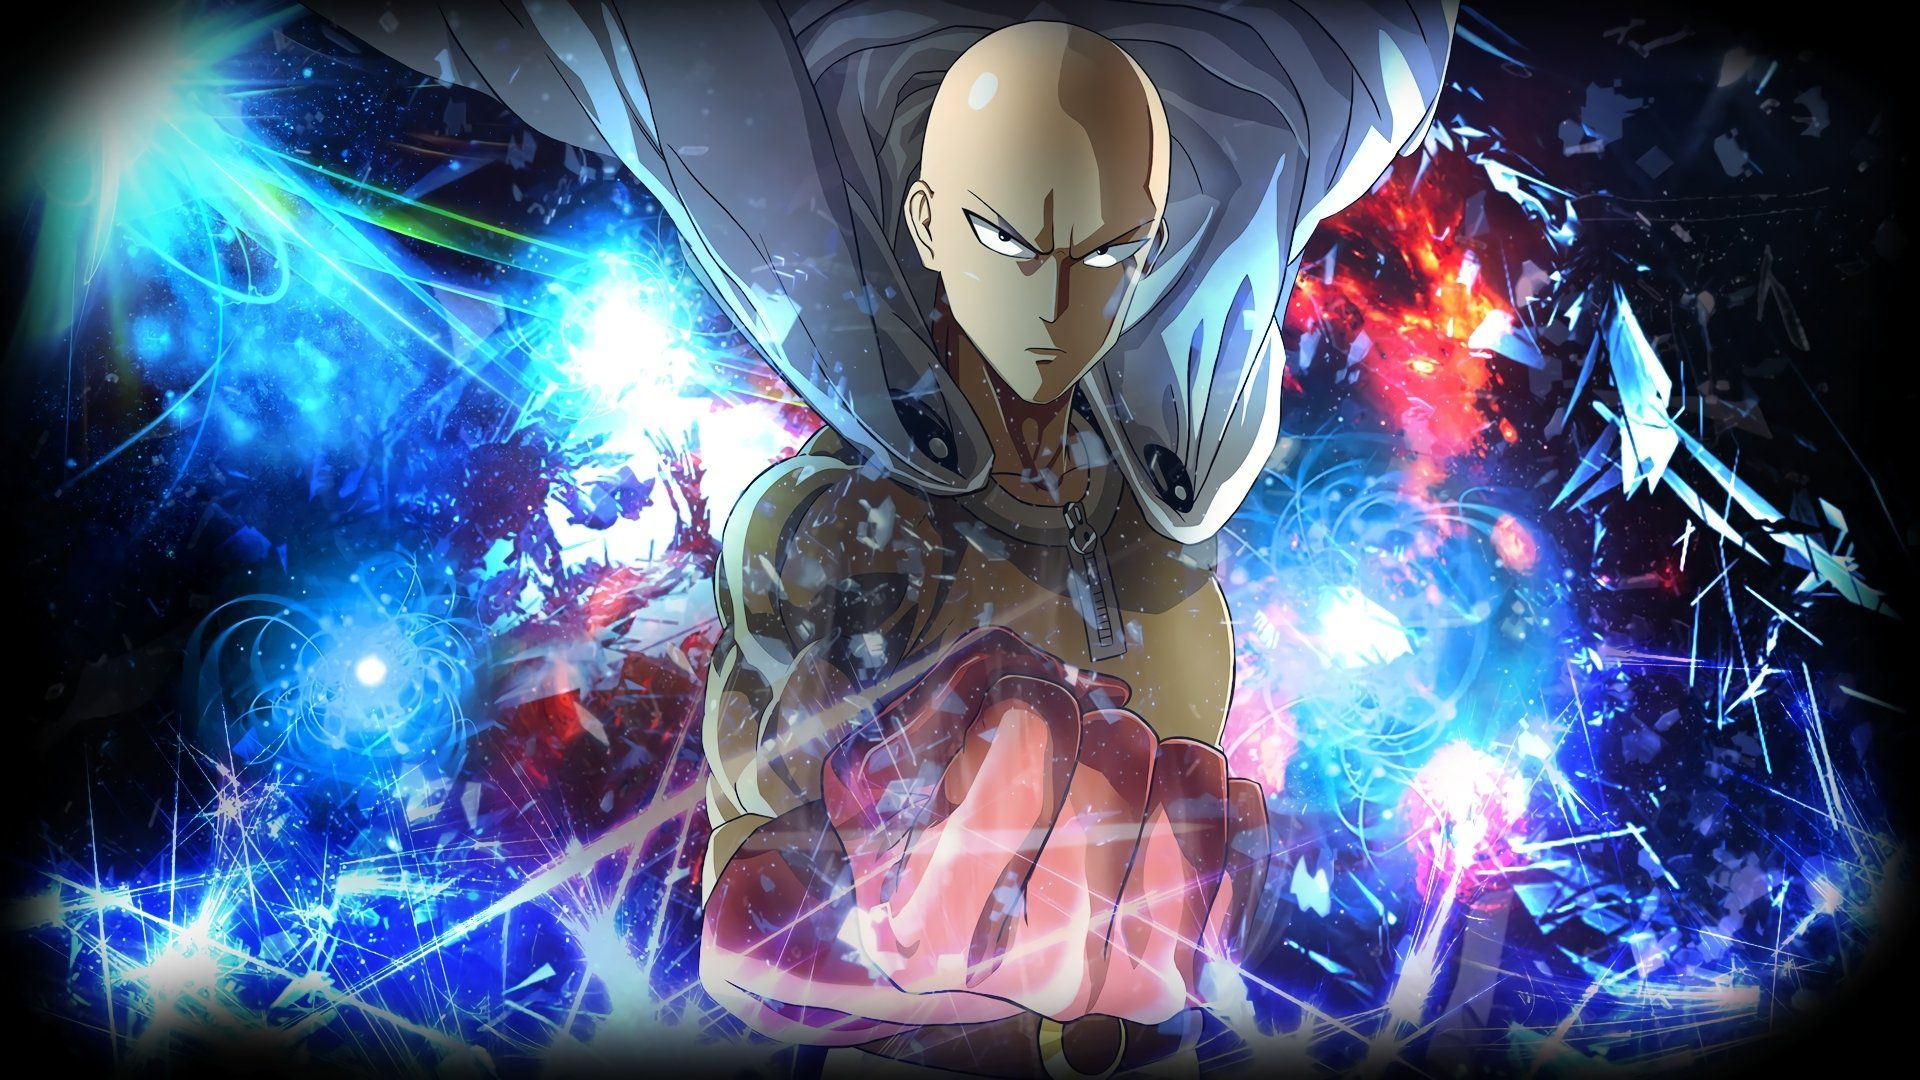 One Punch Man Season 3 Release Date, Plot, Manga Updates Anime Series might not Premiere in 2020